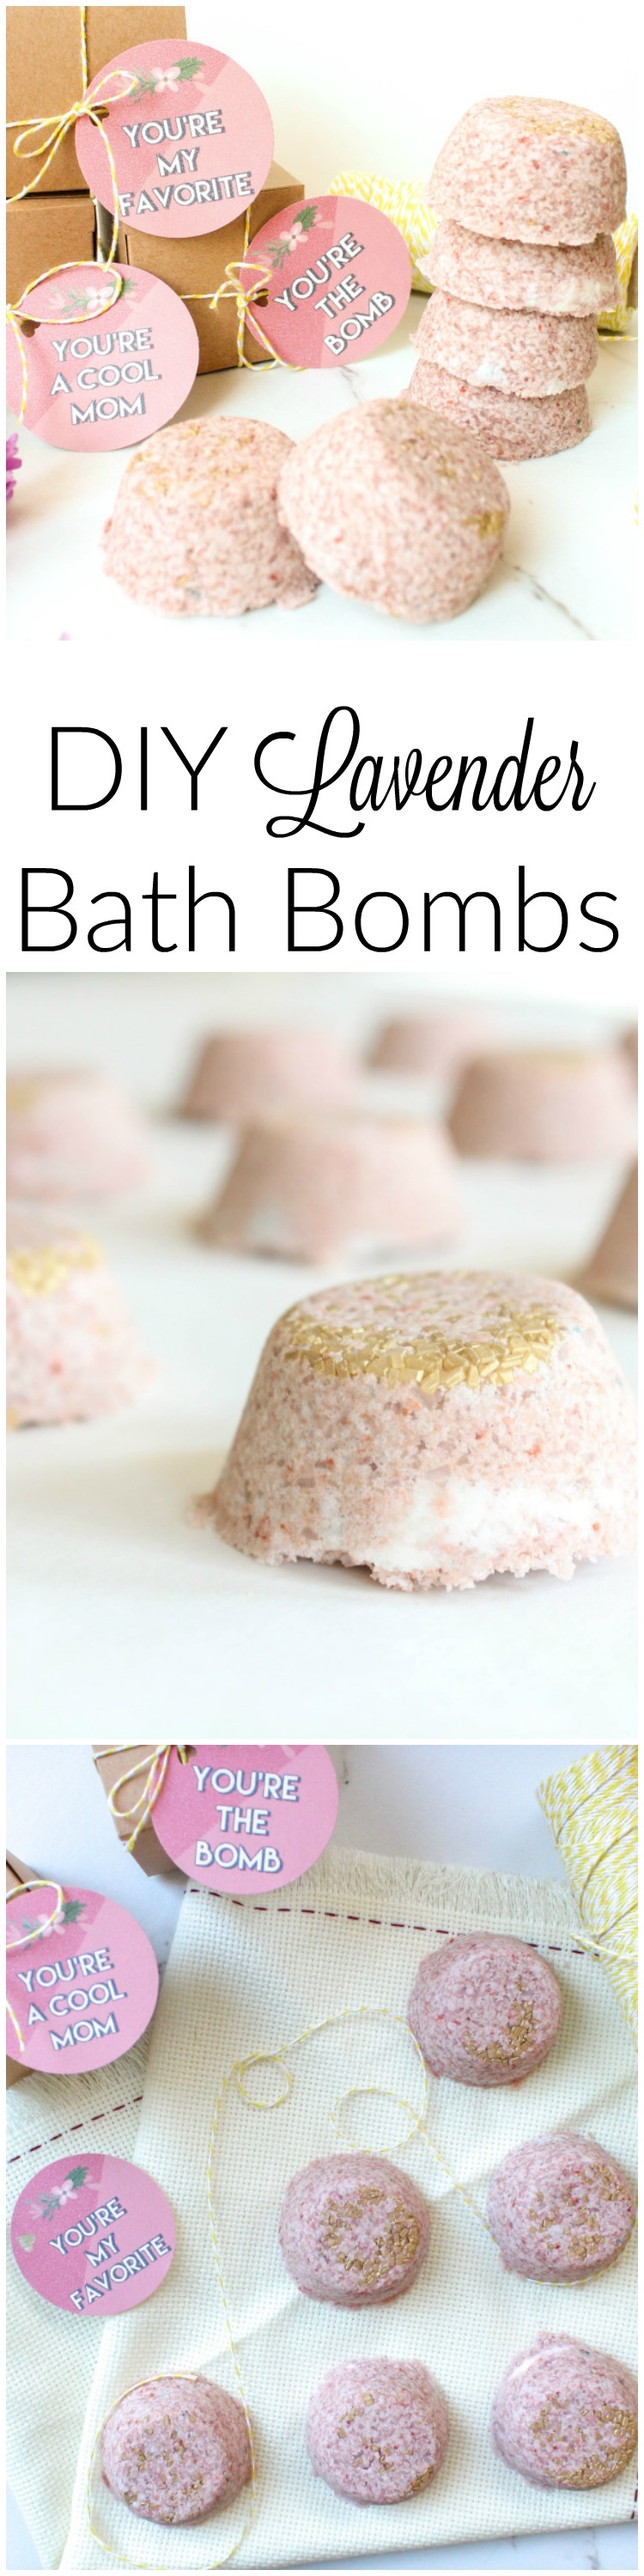 DIY Lavender Bath Bomb! If you are looking for the perfect mother's day gift, these DIY Bath Bombs are perfect. They smell delicious and any Mom will love them!